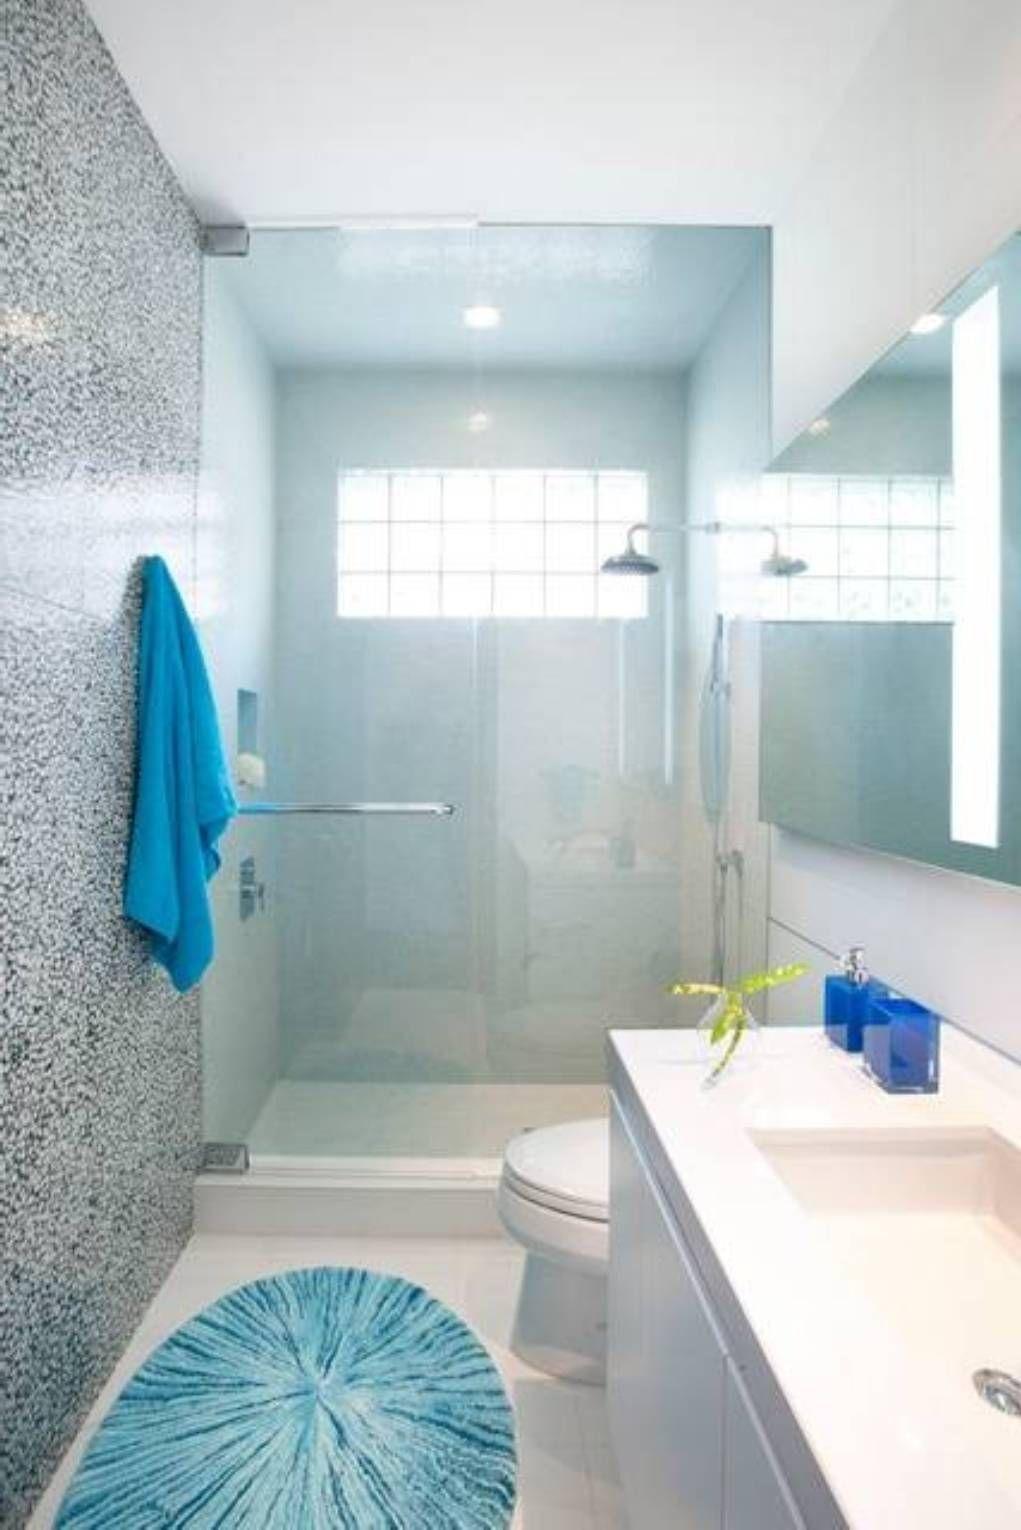 Bathroom designs for small spaces blue - 25 Small Bathroom Ideas Photo Gallery